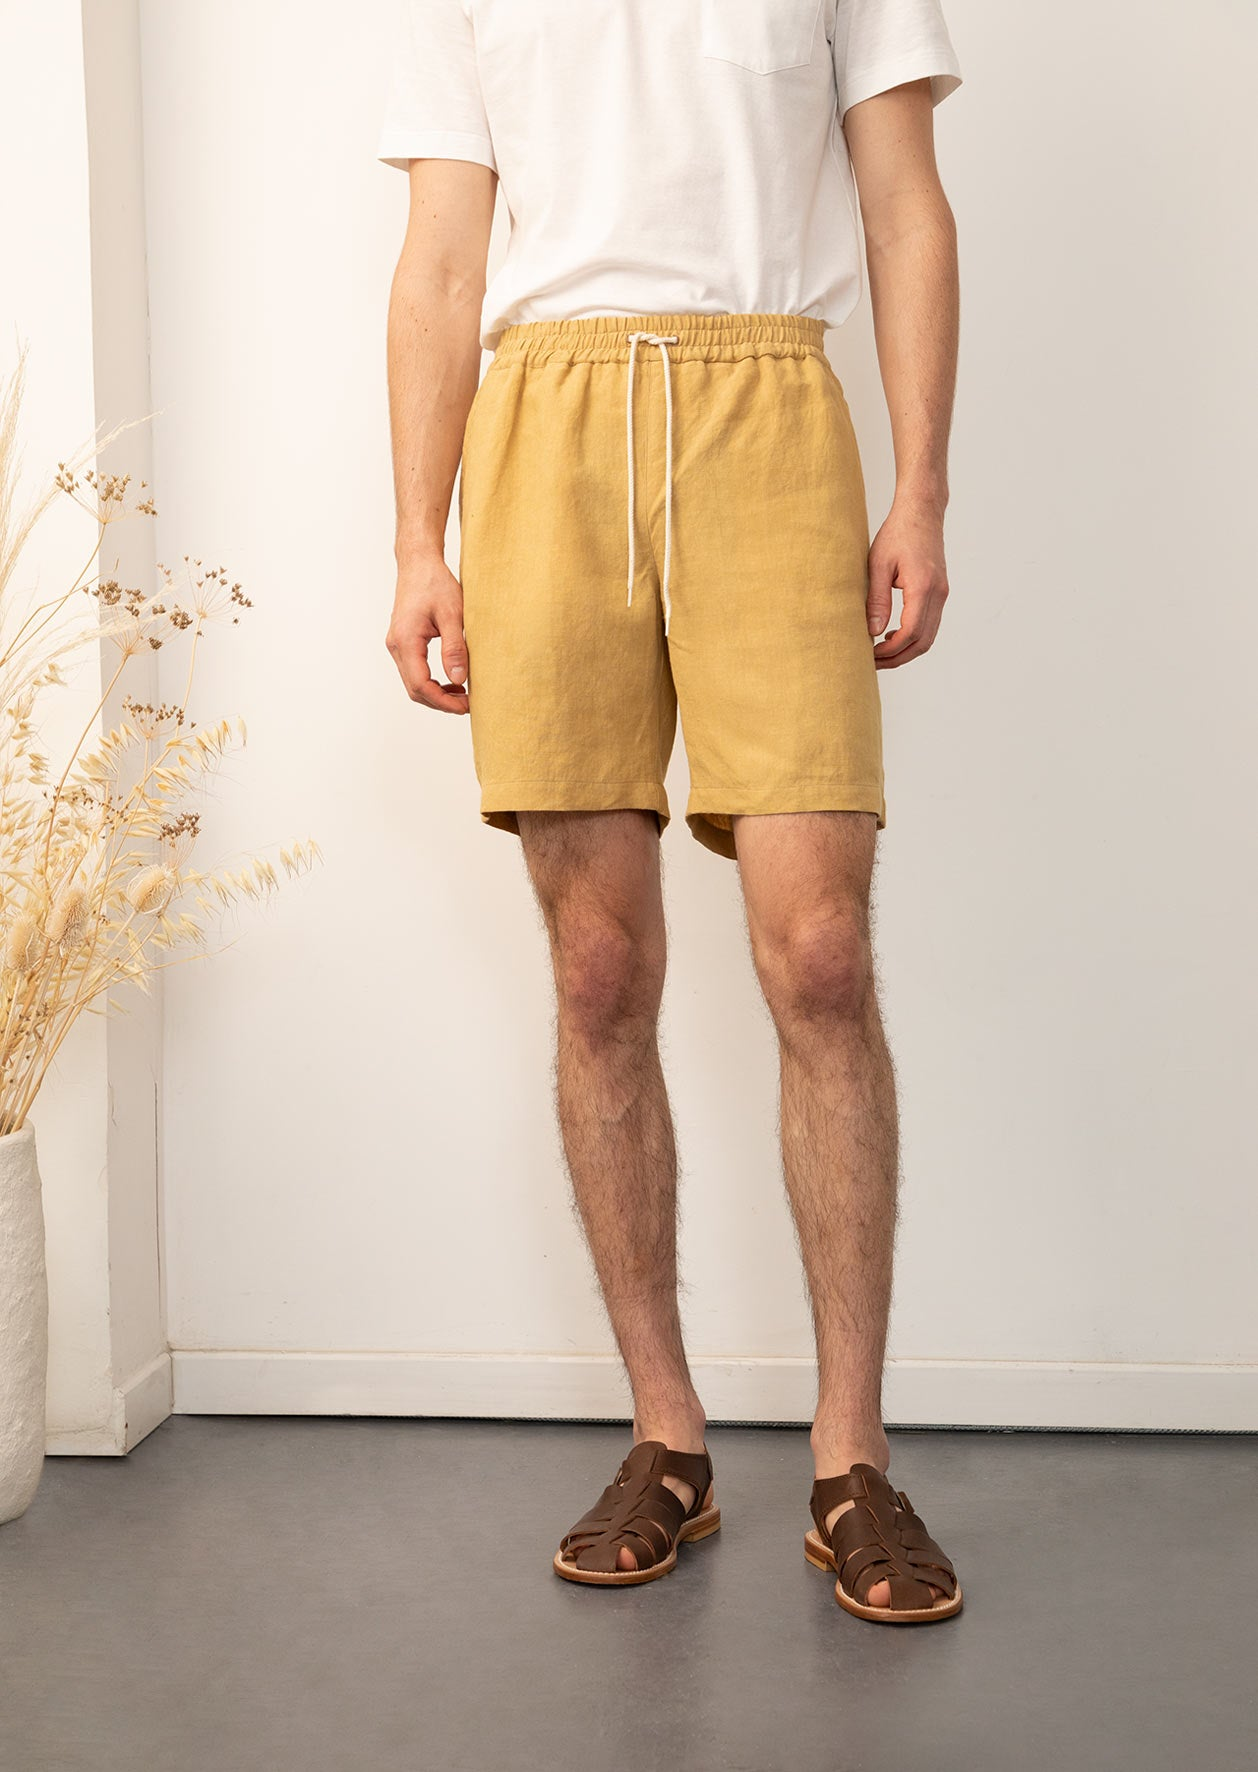 De Bonne Facture - Easy shorts - Belgian washed linen - Straw